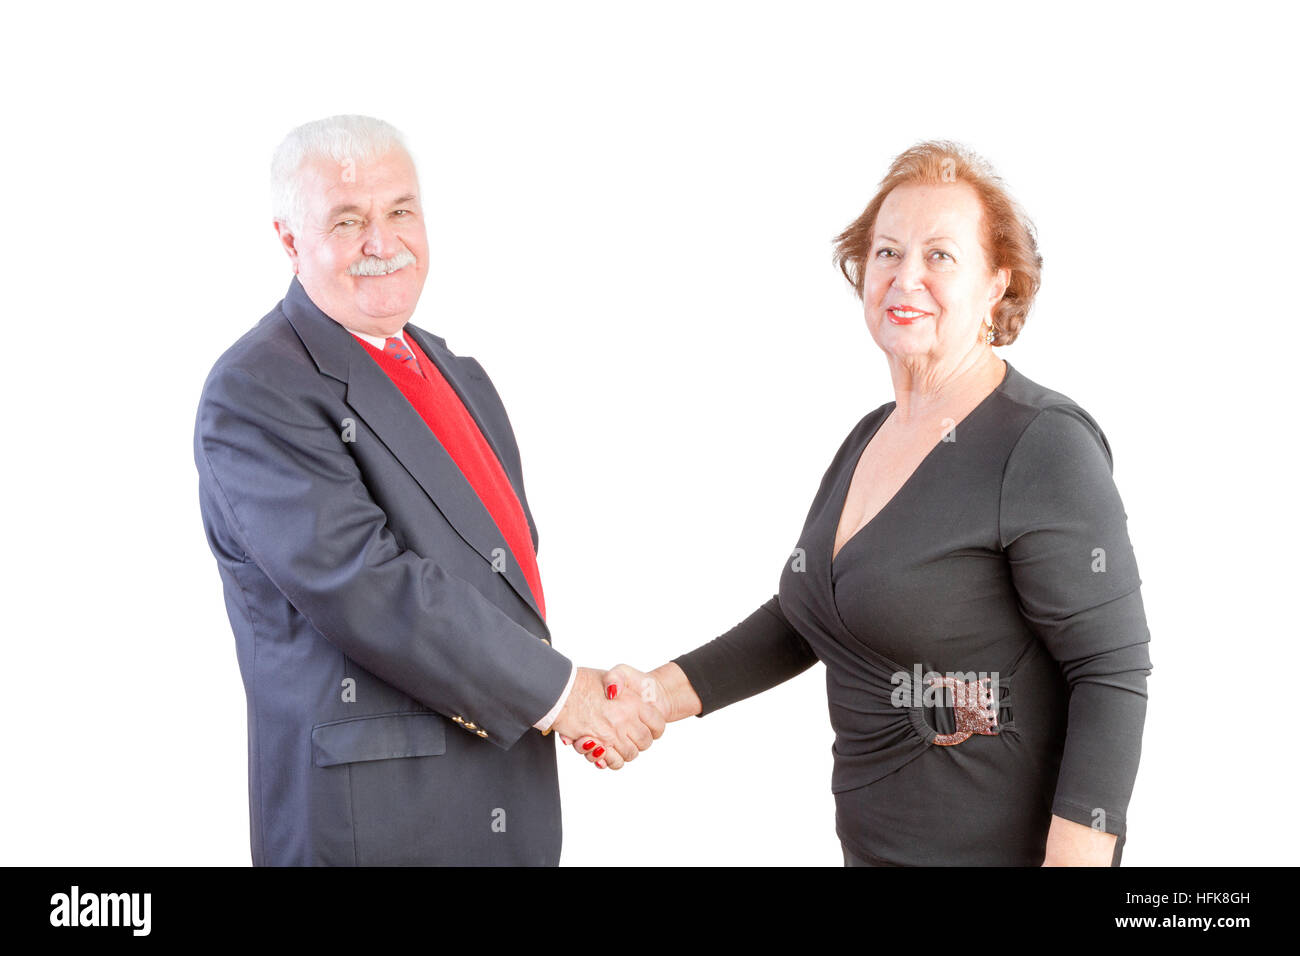 Business people handshake greeting deal at work photo free download - Elderly Business Man And Woman Shake Hands And Smile At The Camera Against A White Background